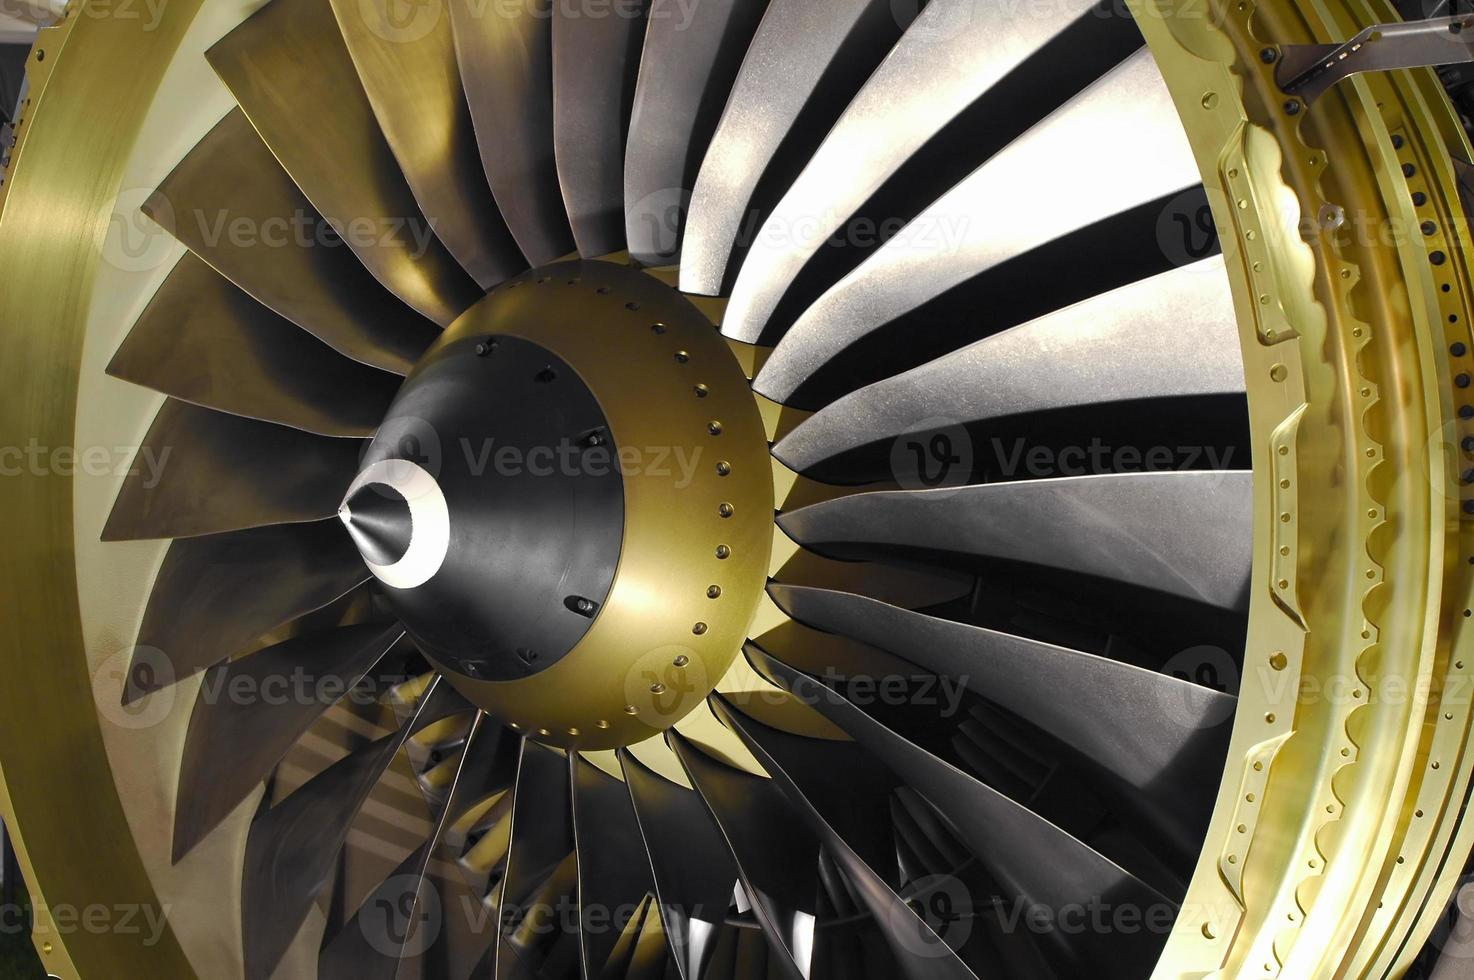 Computer generated imagery of jet engine blades photo